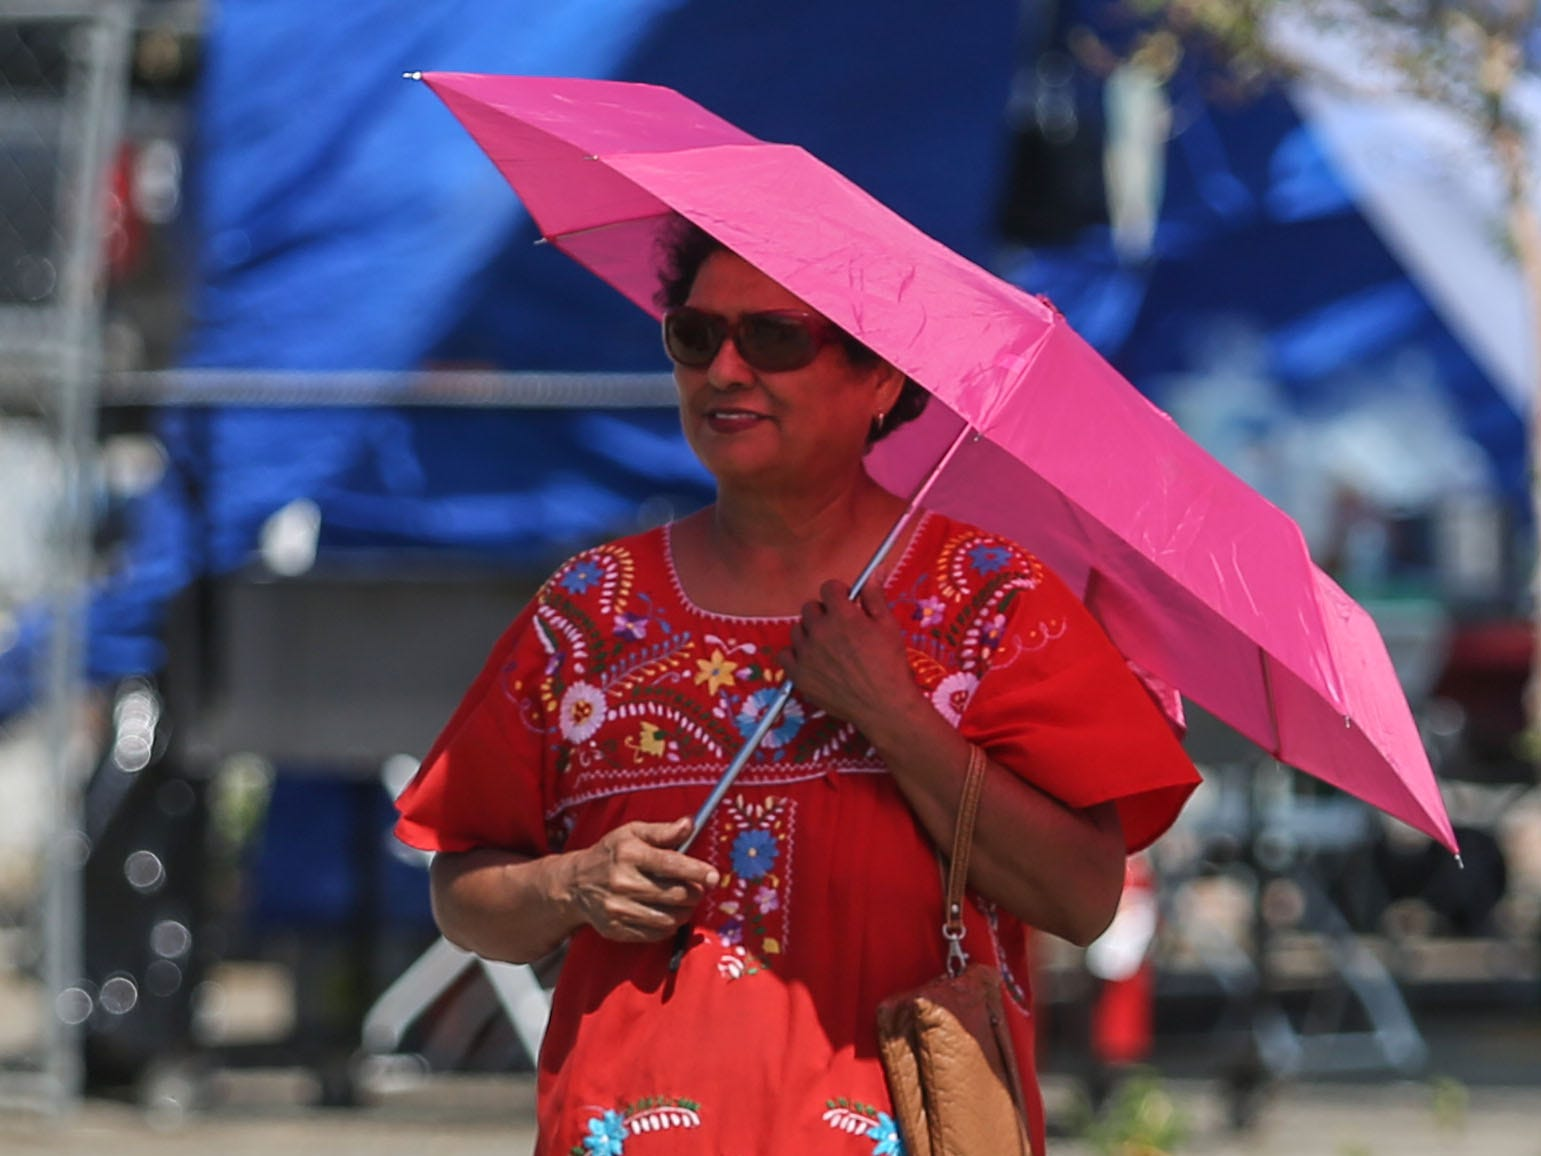 A woman with an umbrella at the Mexican independence day celebration at Our Virgin of Guadalupe Church in Mecca on Saturday, September 15, 2018.